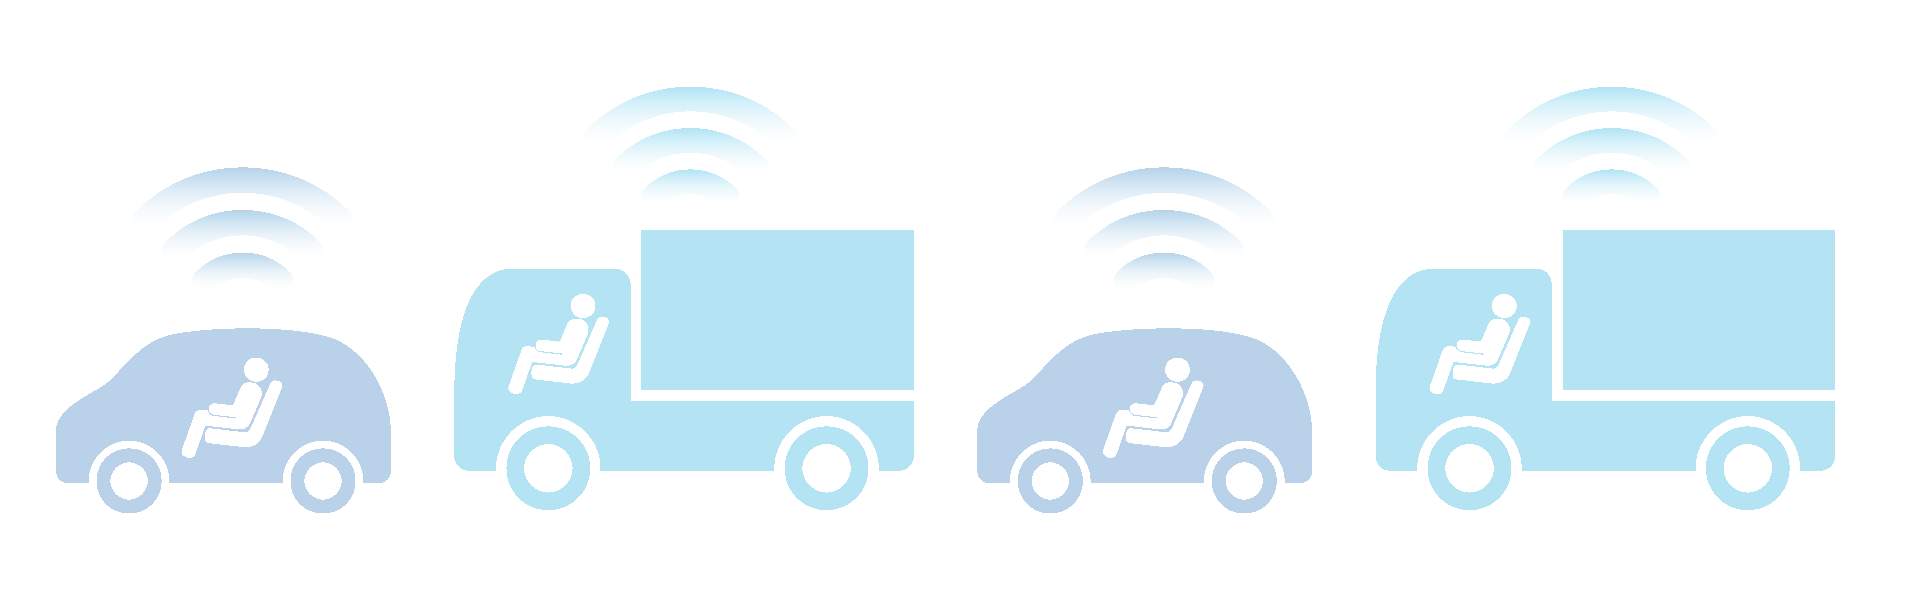 Connected and Autonomous Vehicle Technology – Wisconn Valley